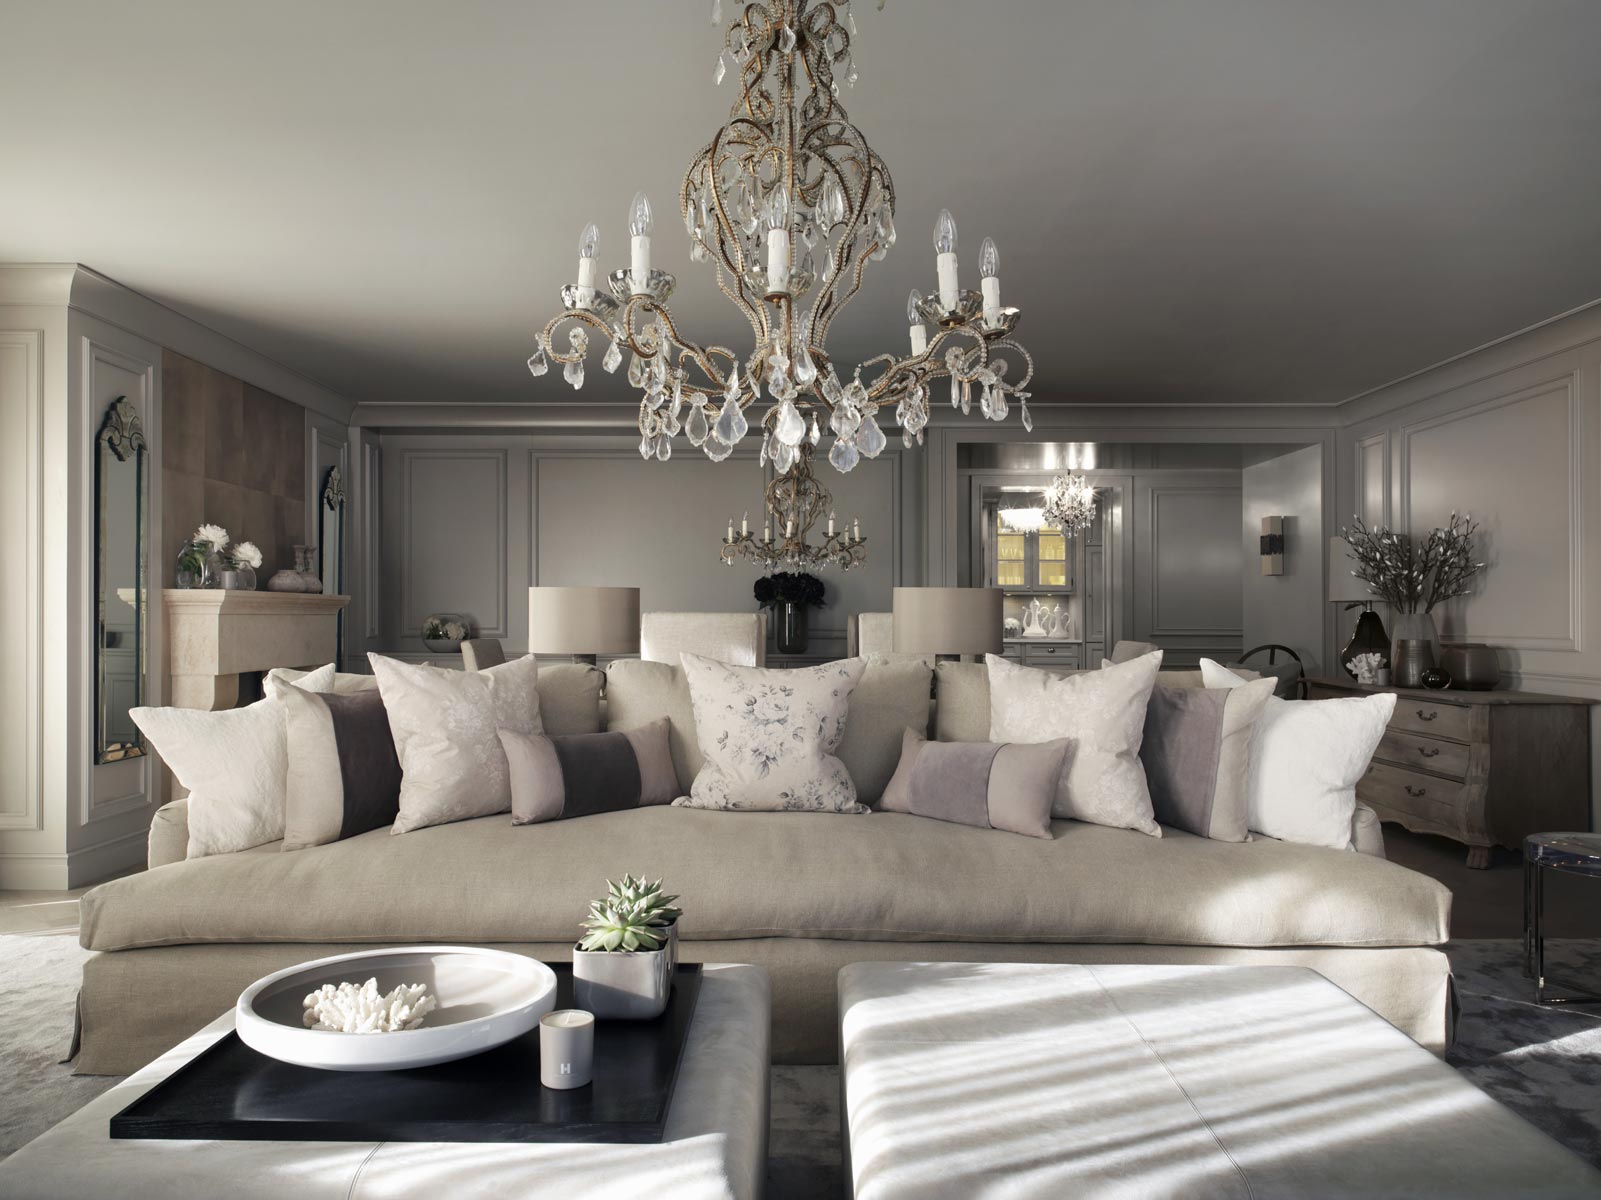 kelly hoppen living room ideas 10 hoppen living room ideas 19047